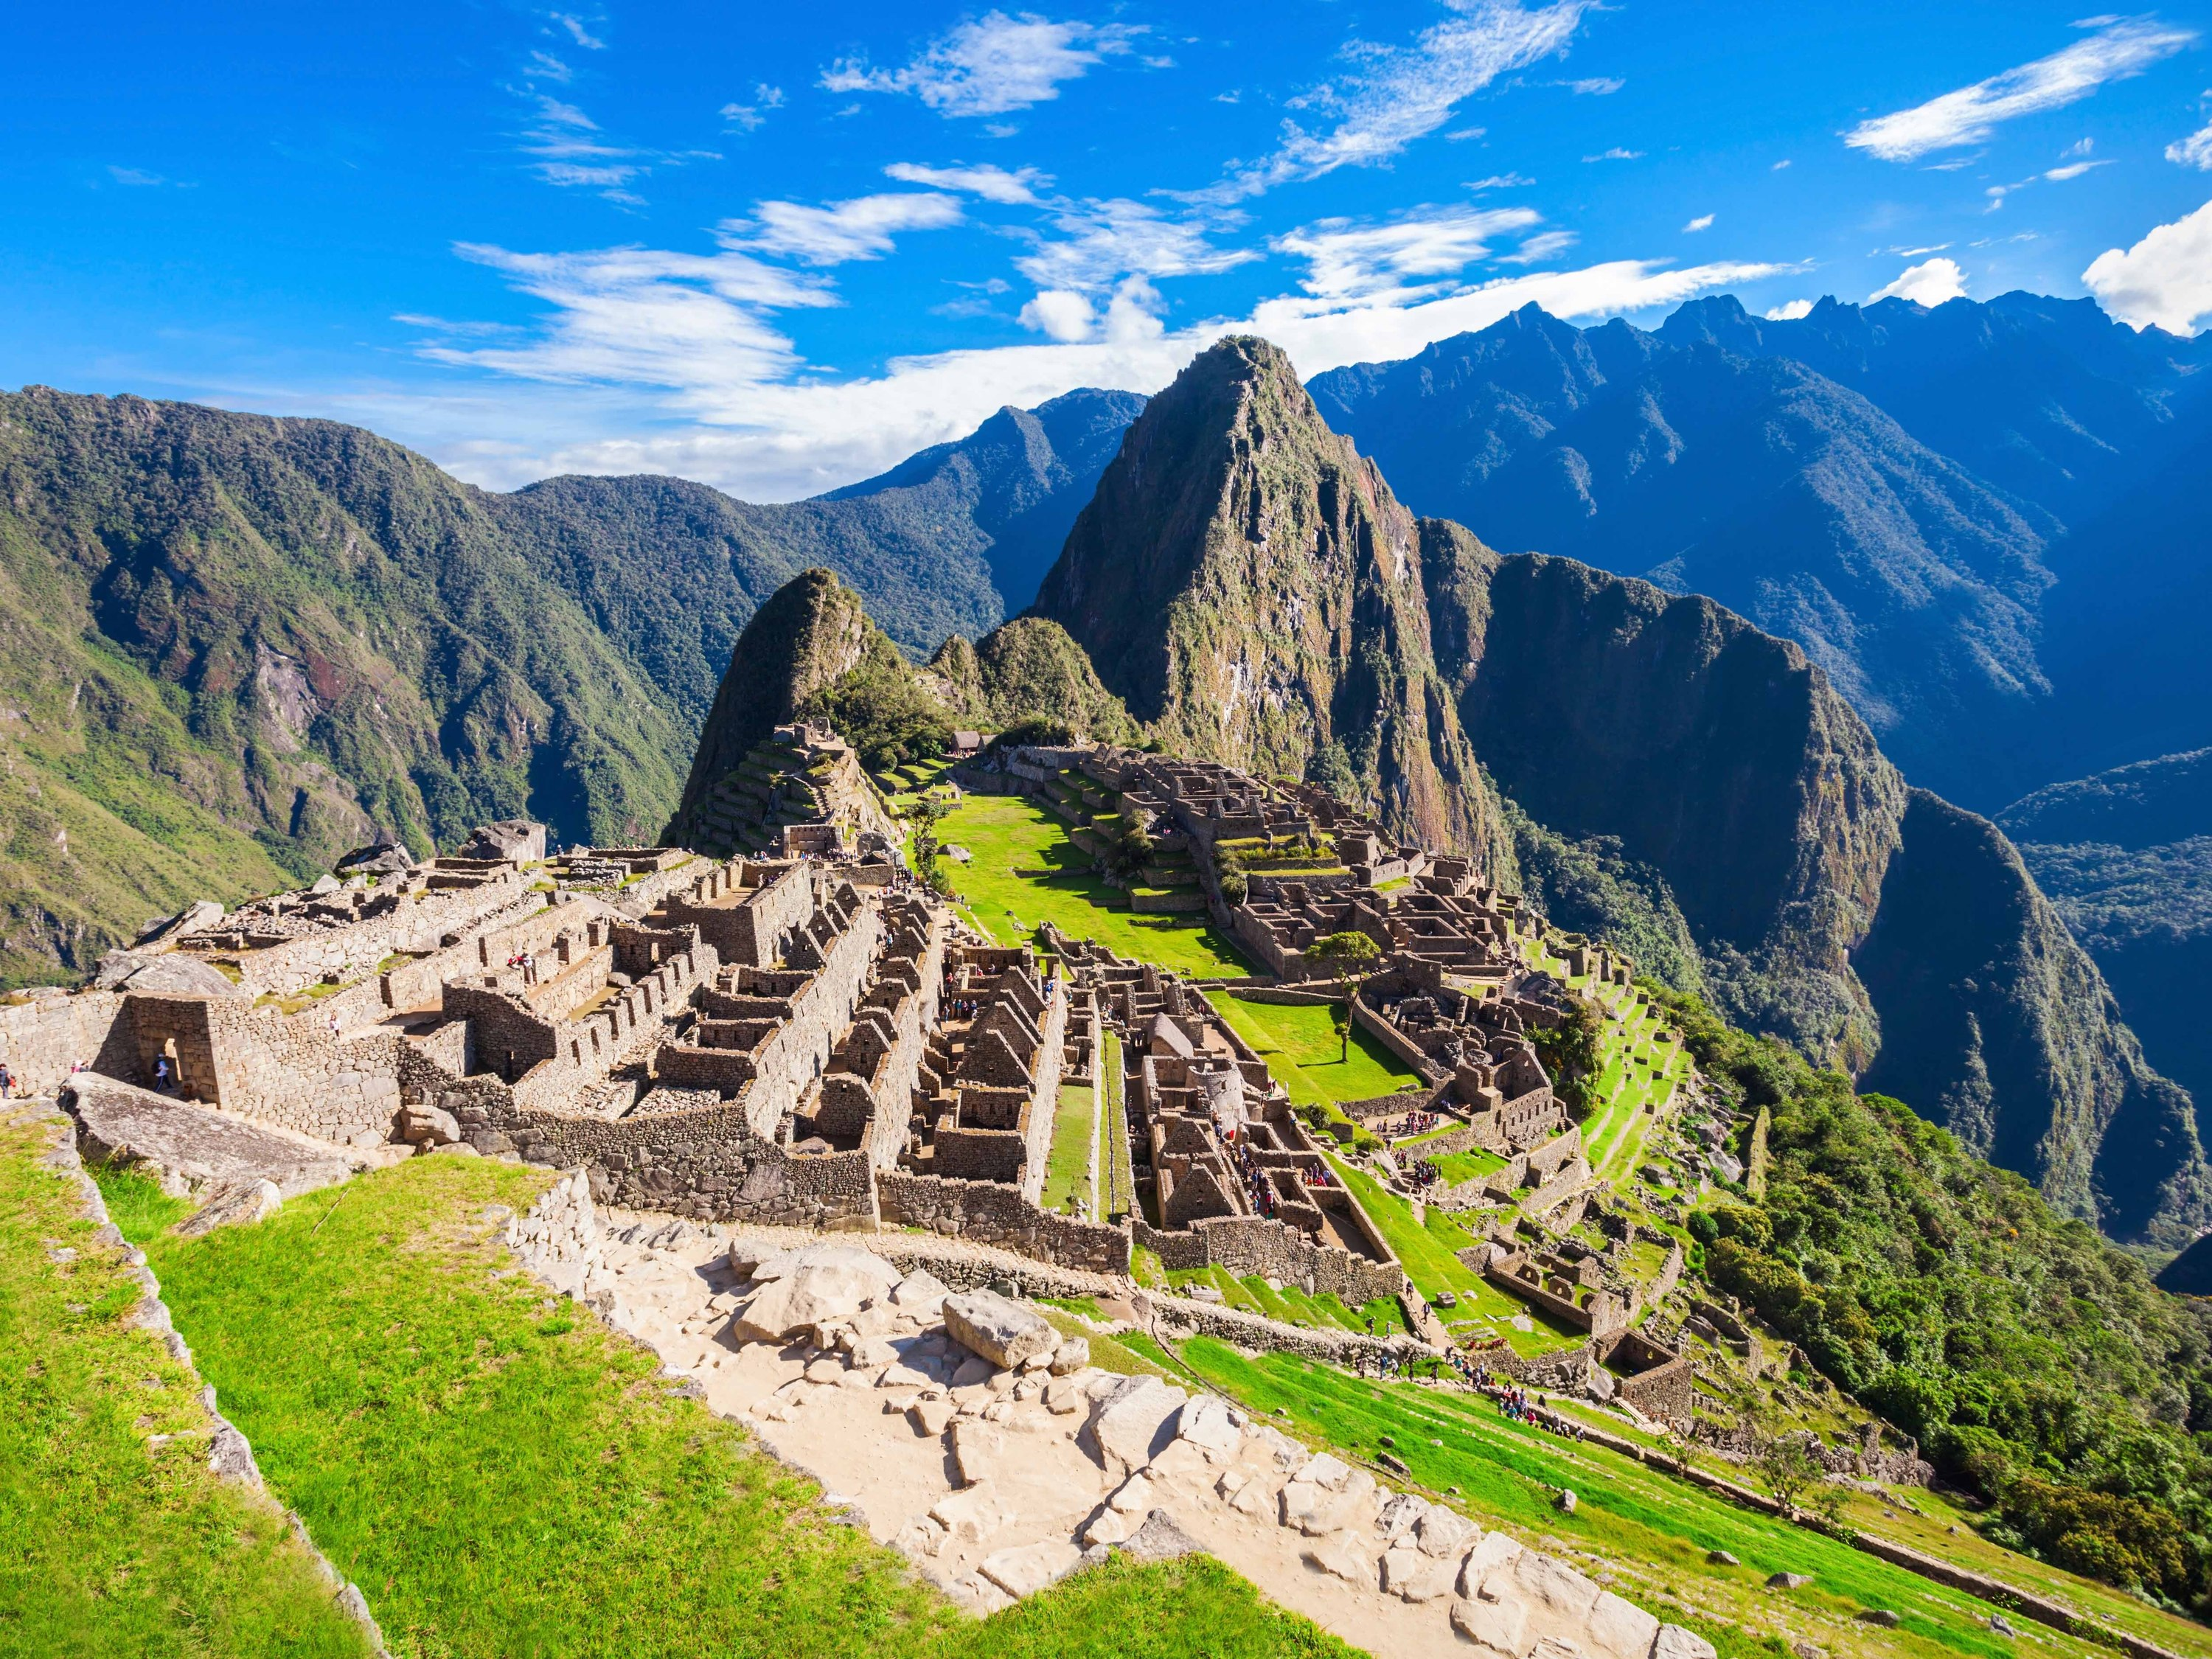 Great news: Machu Picchu in Peru is opening to American tourists starting this Sunday